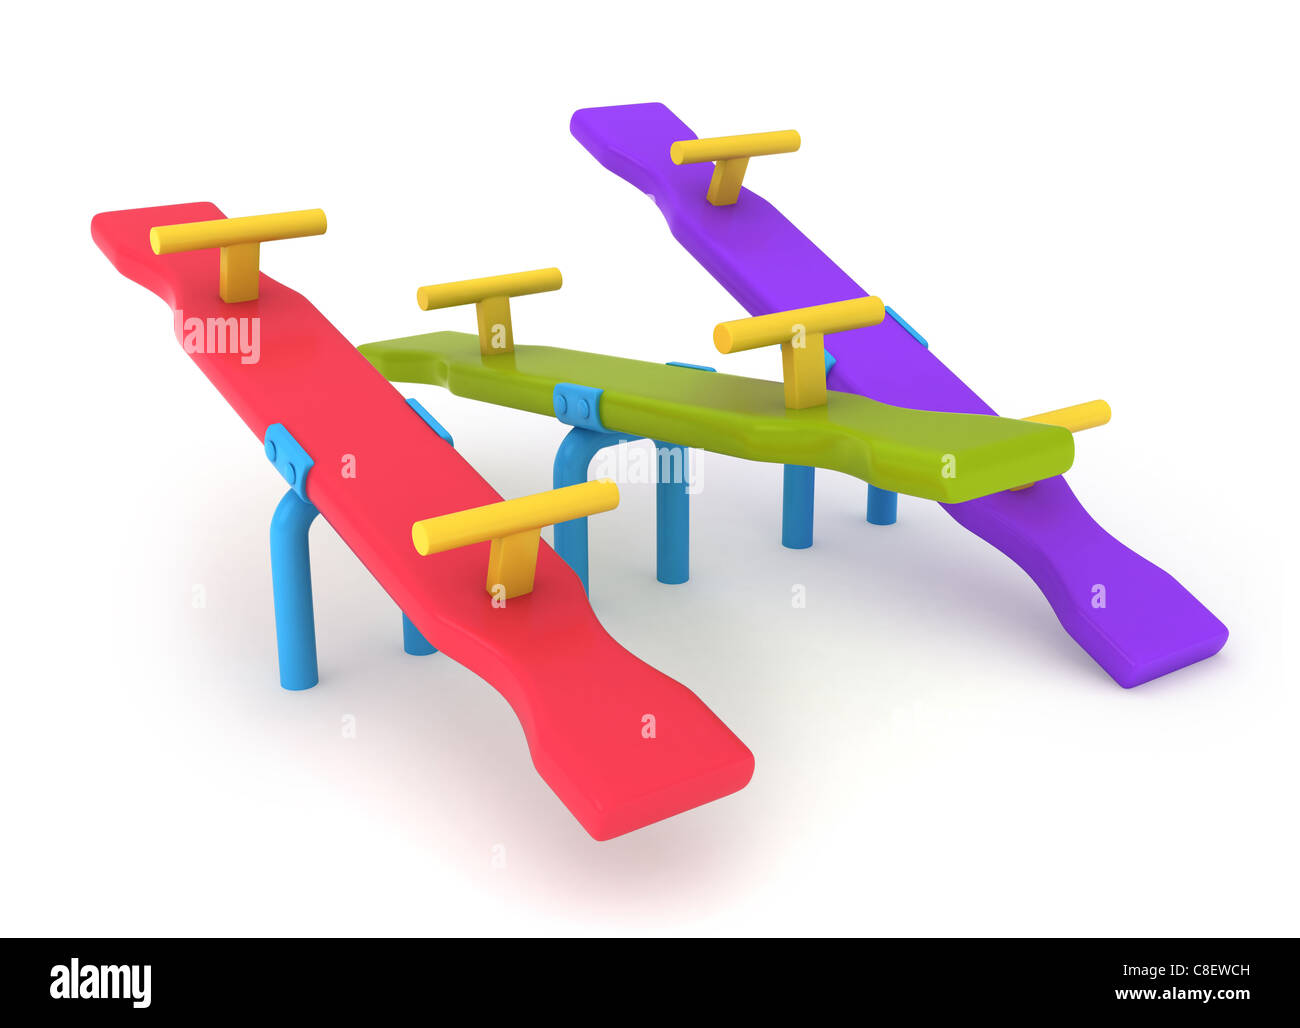 3D Illustration of Seesaws - Stock Image